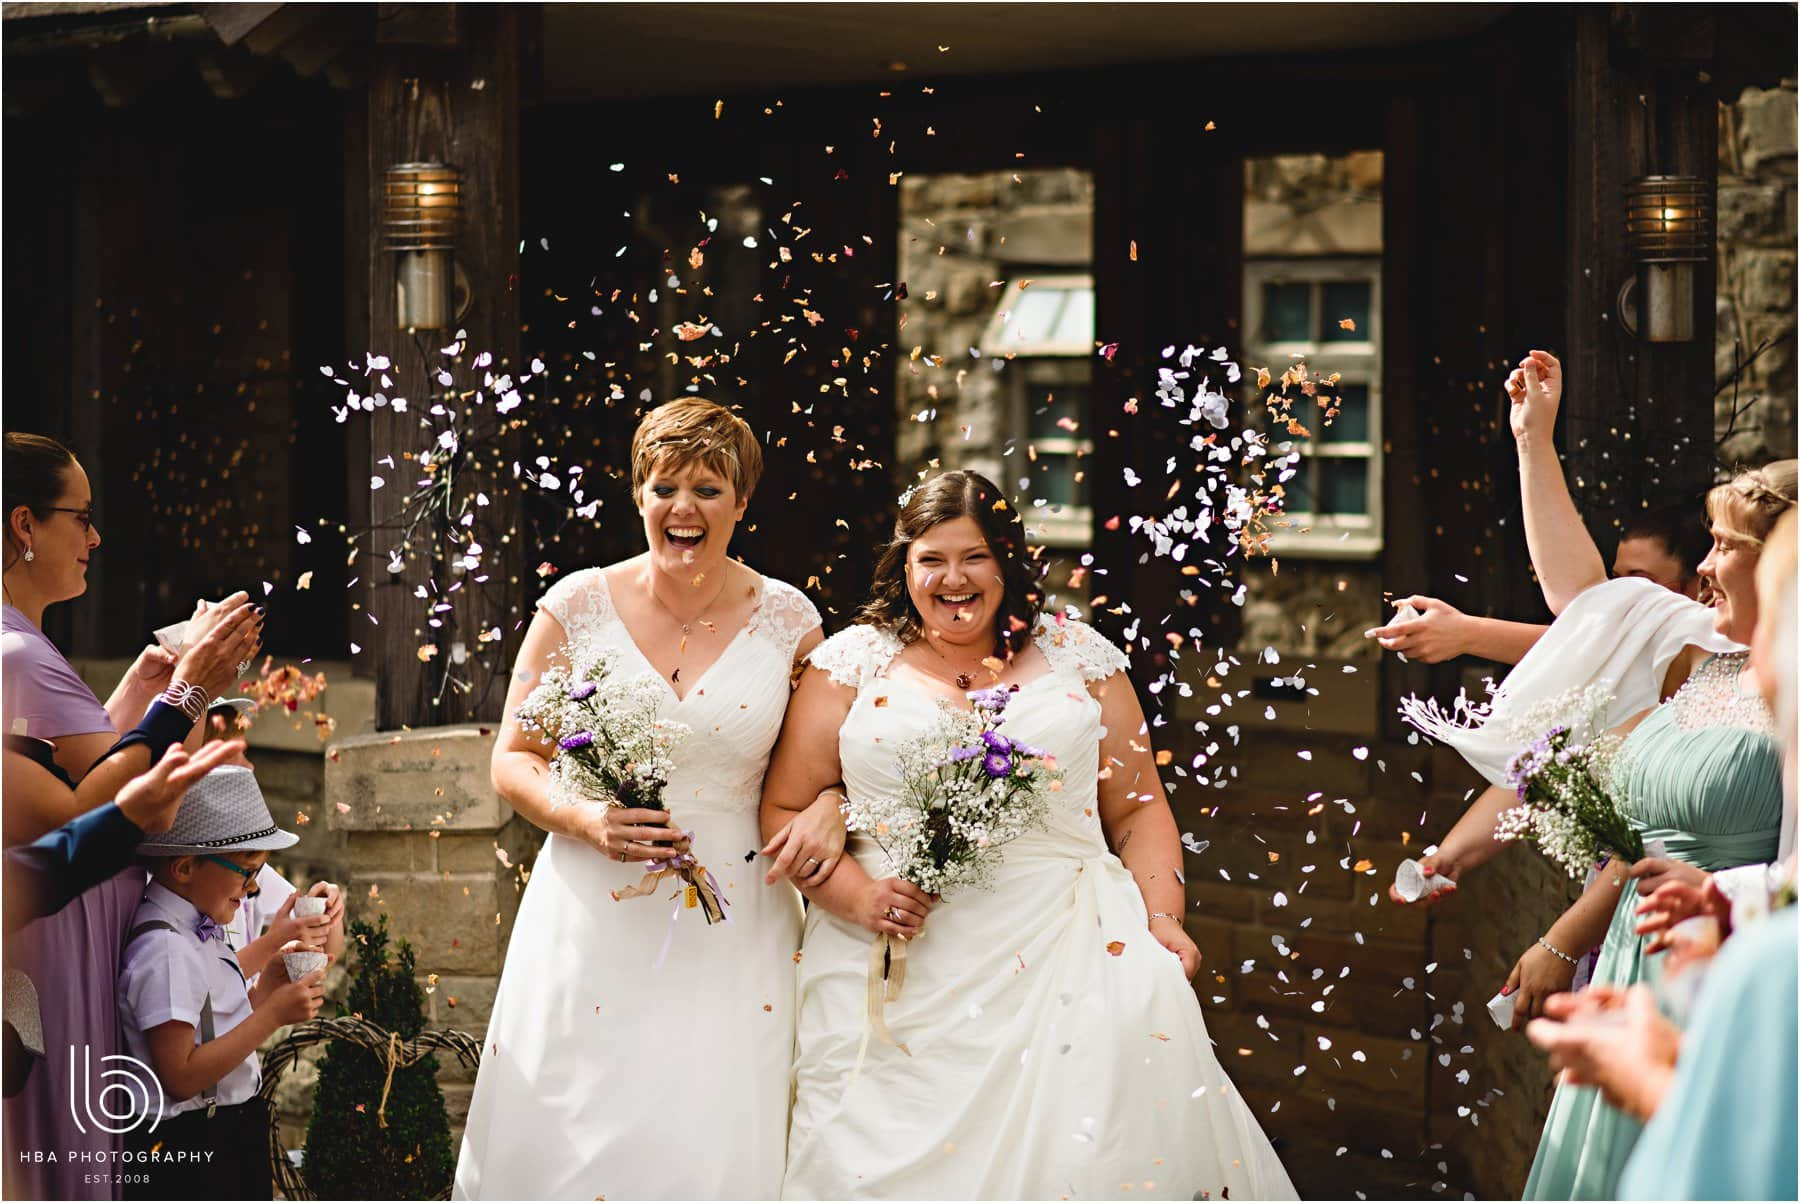 the two brides getting covered in confetti